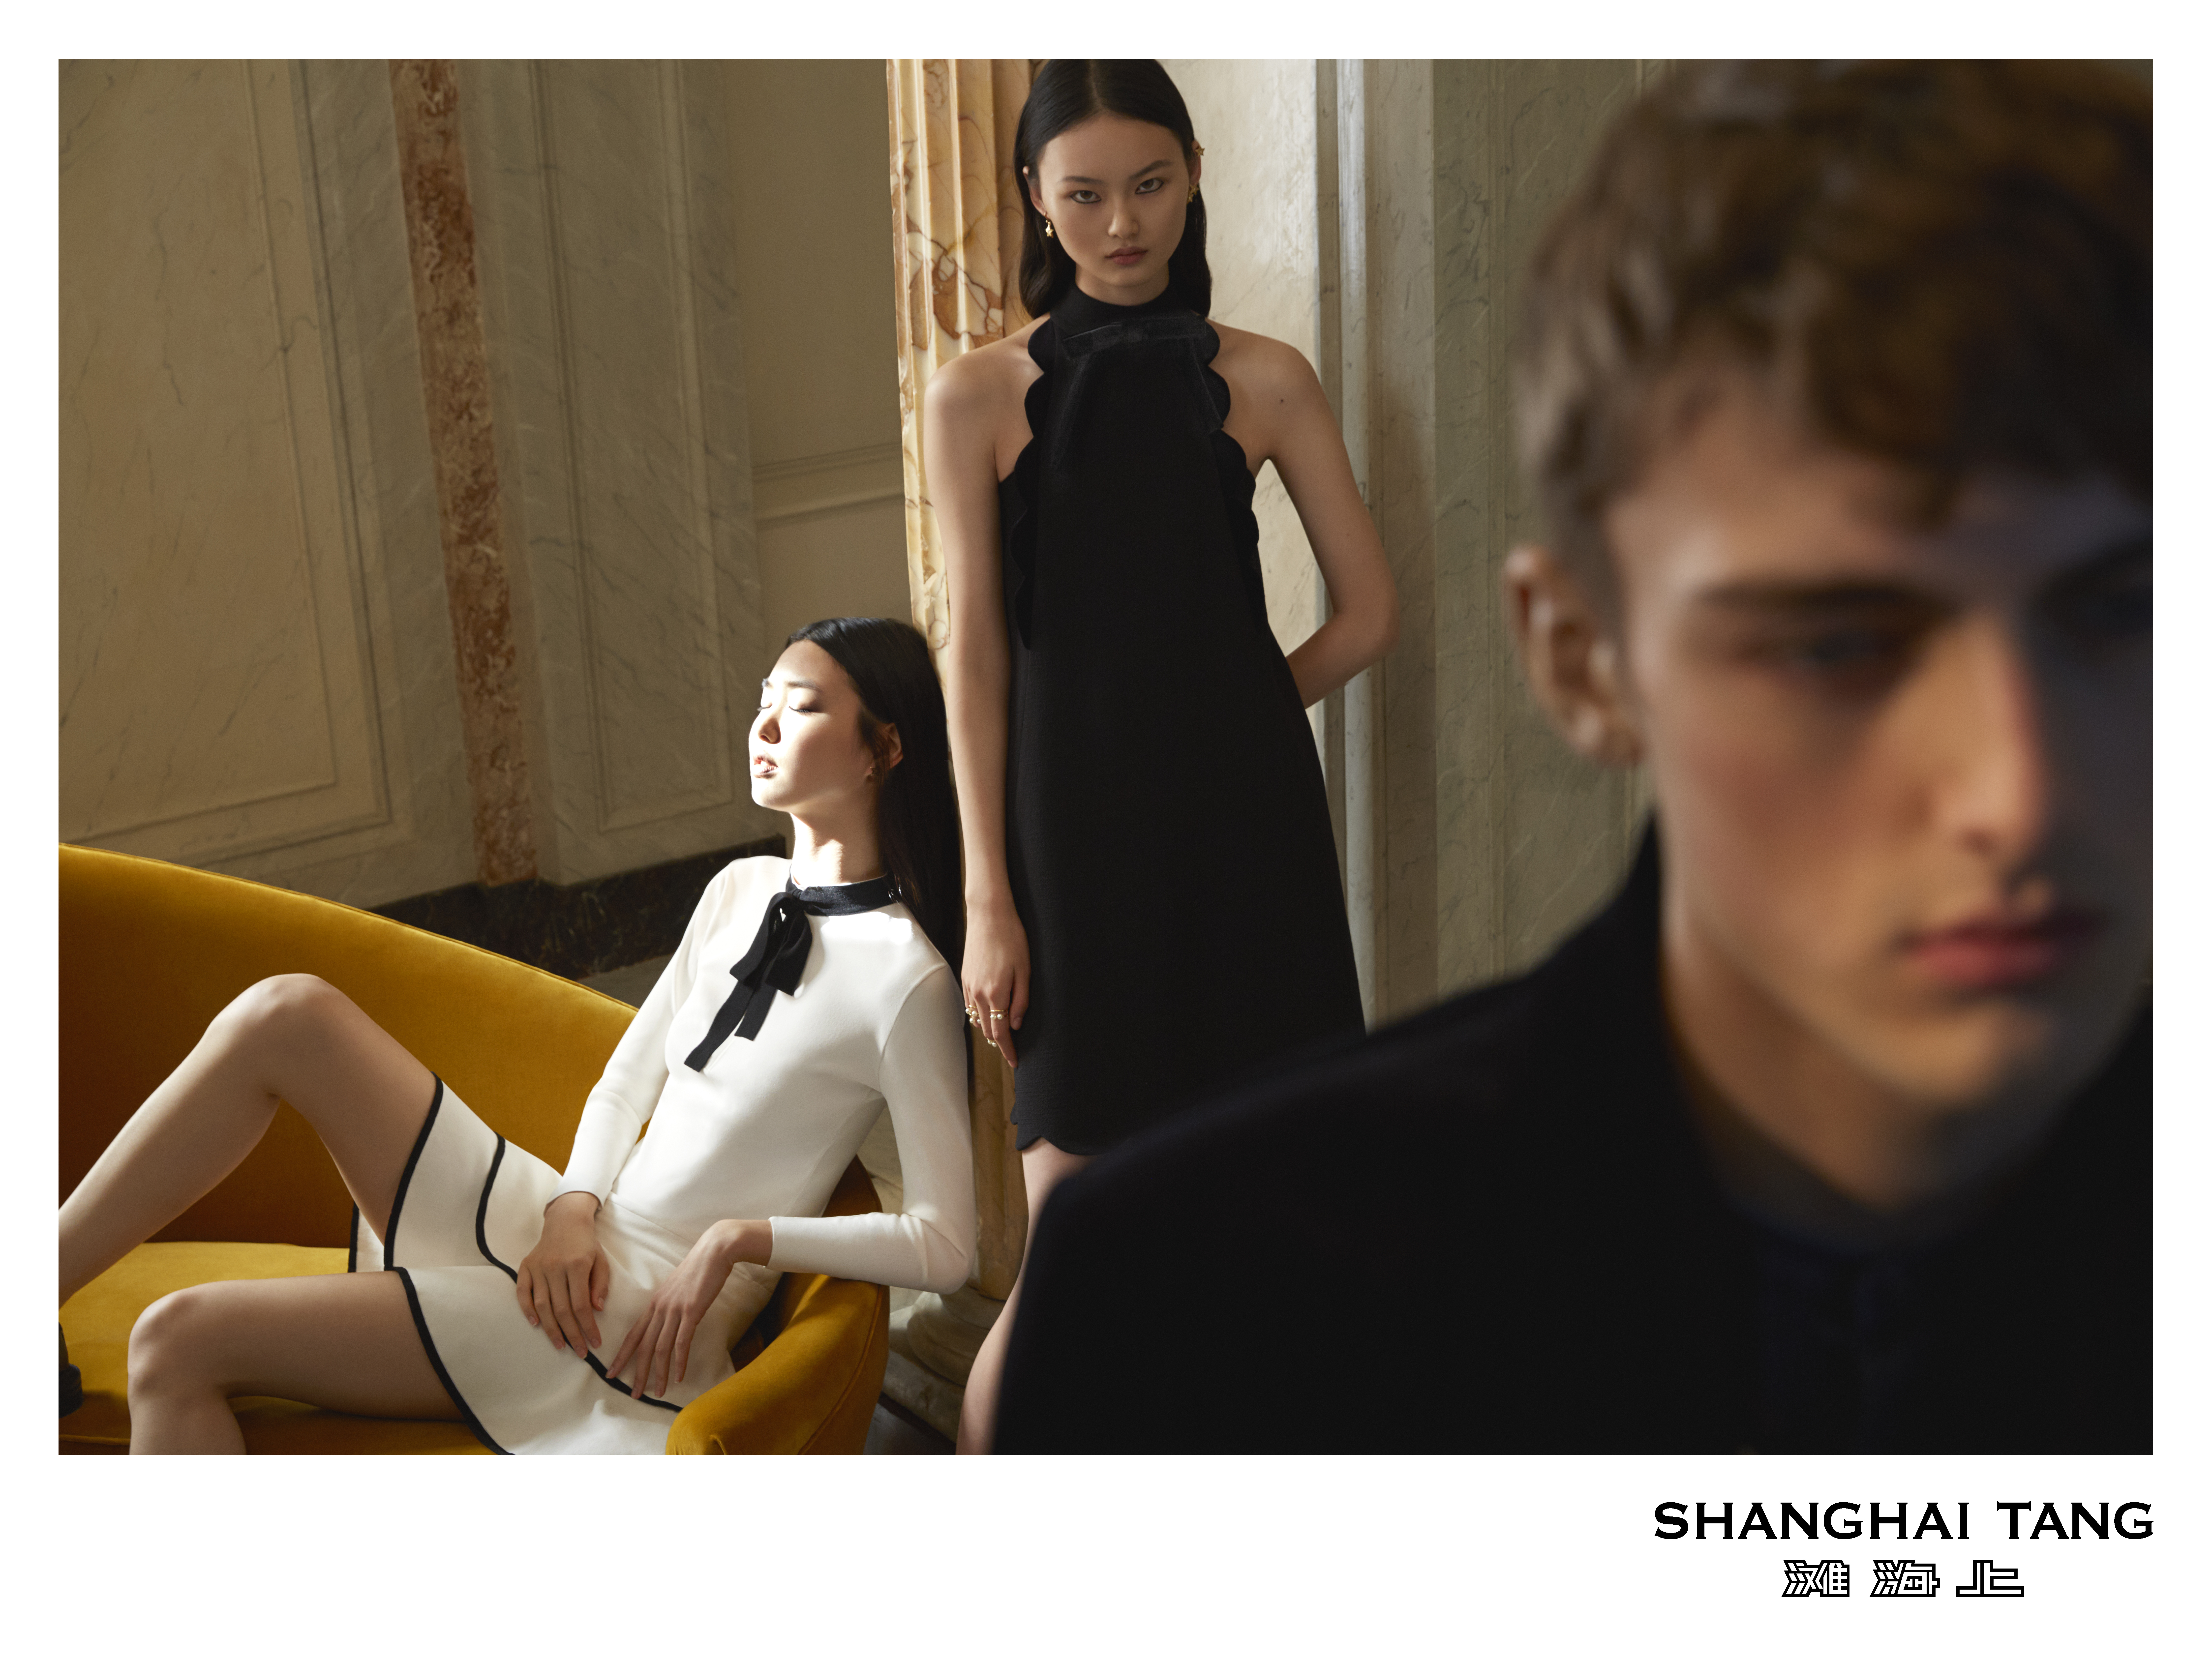 Models Estelle Chen, He Cong, and Will Samways star in the campaign.